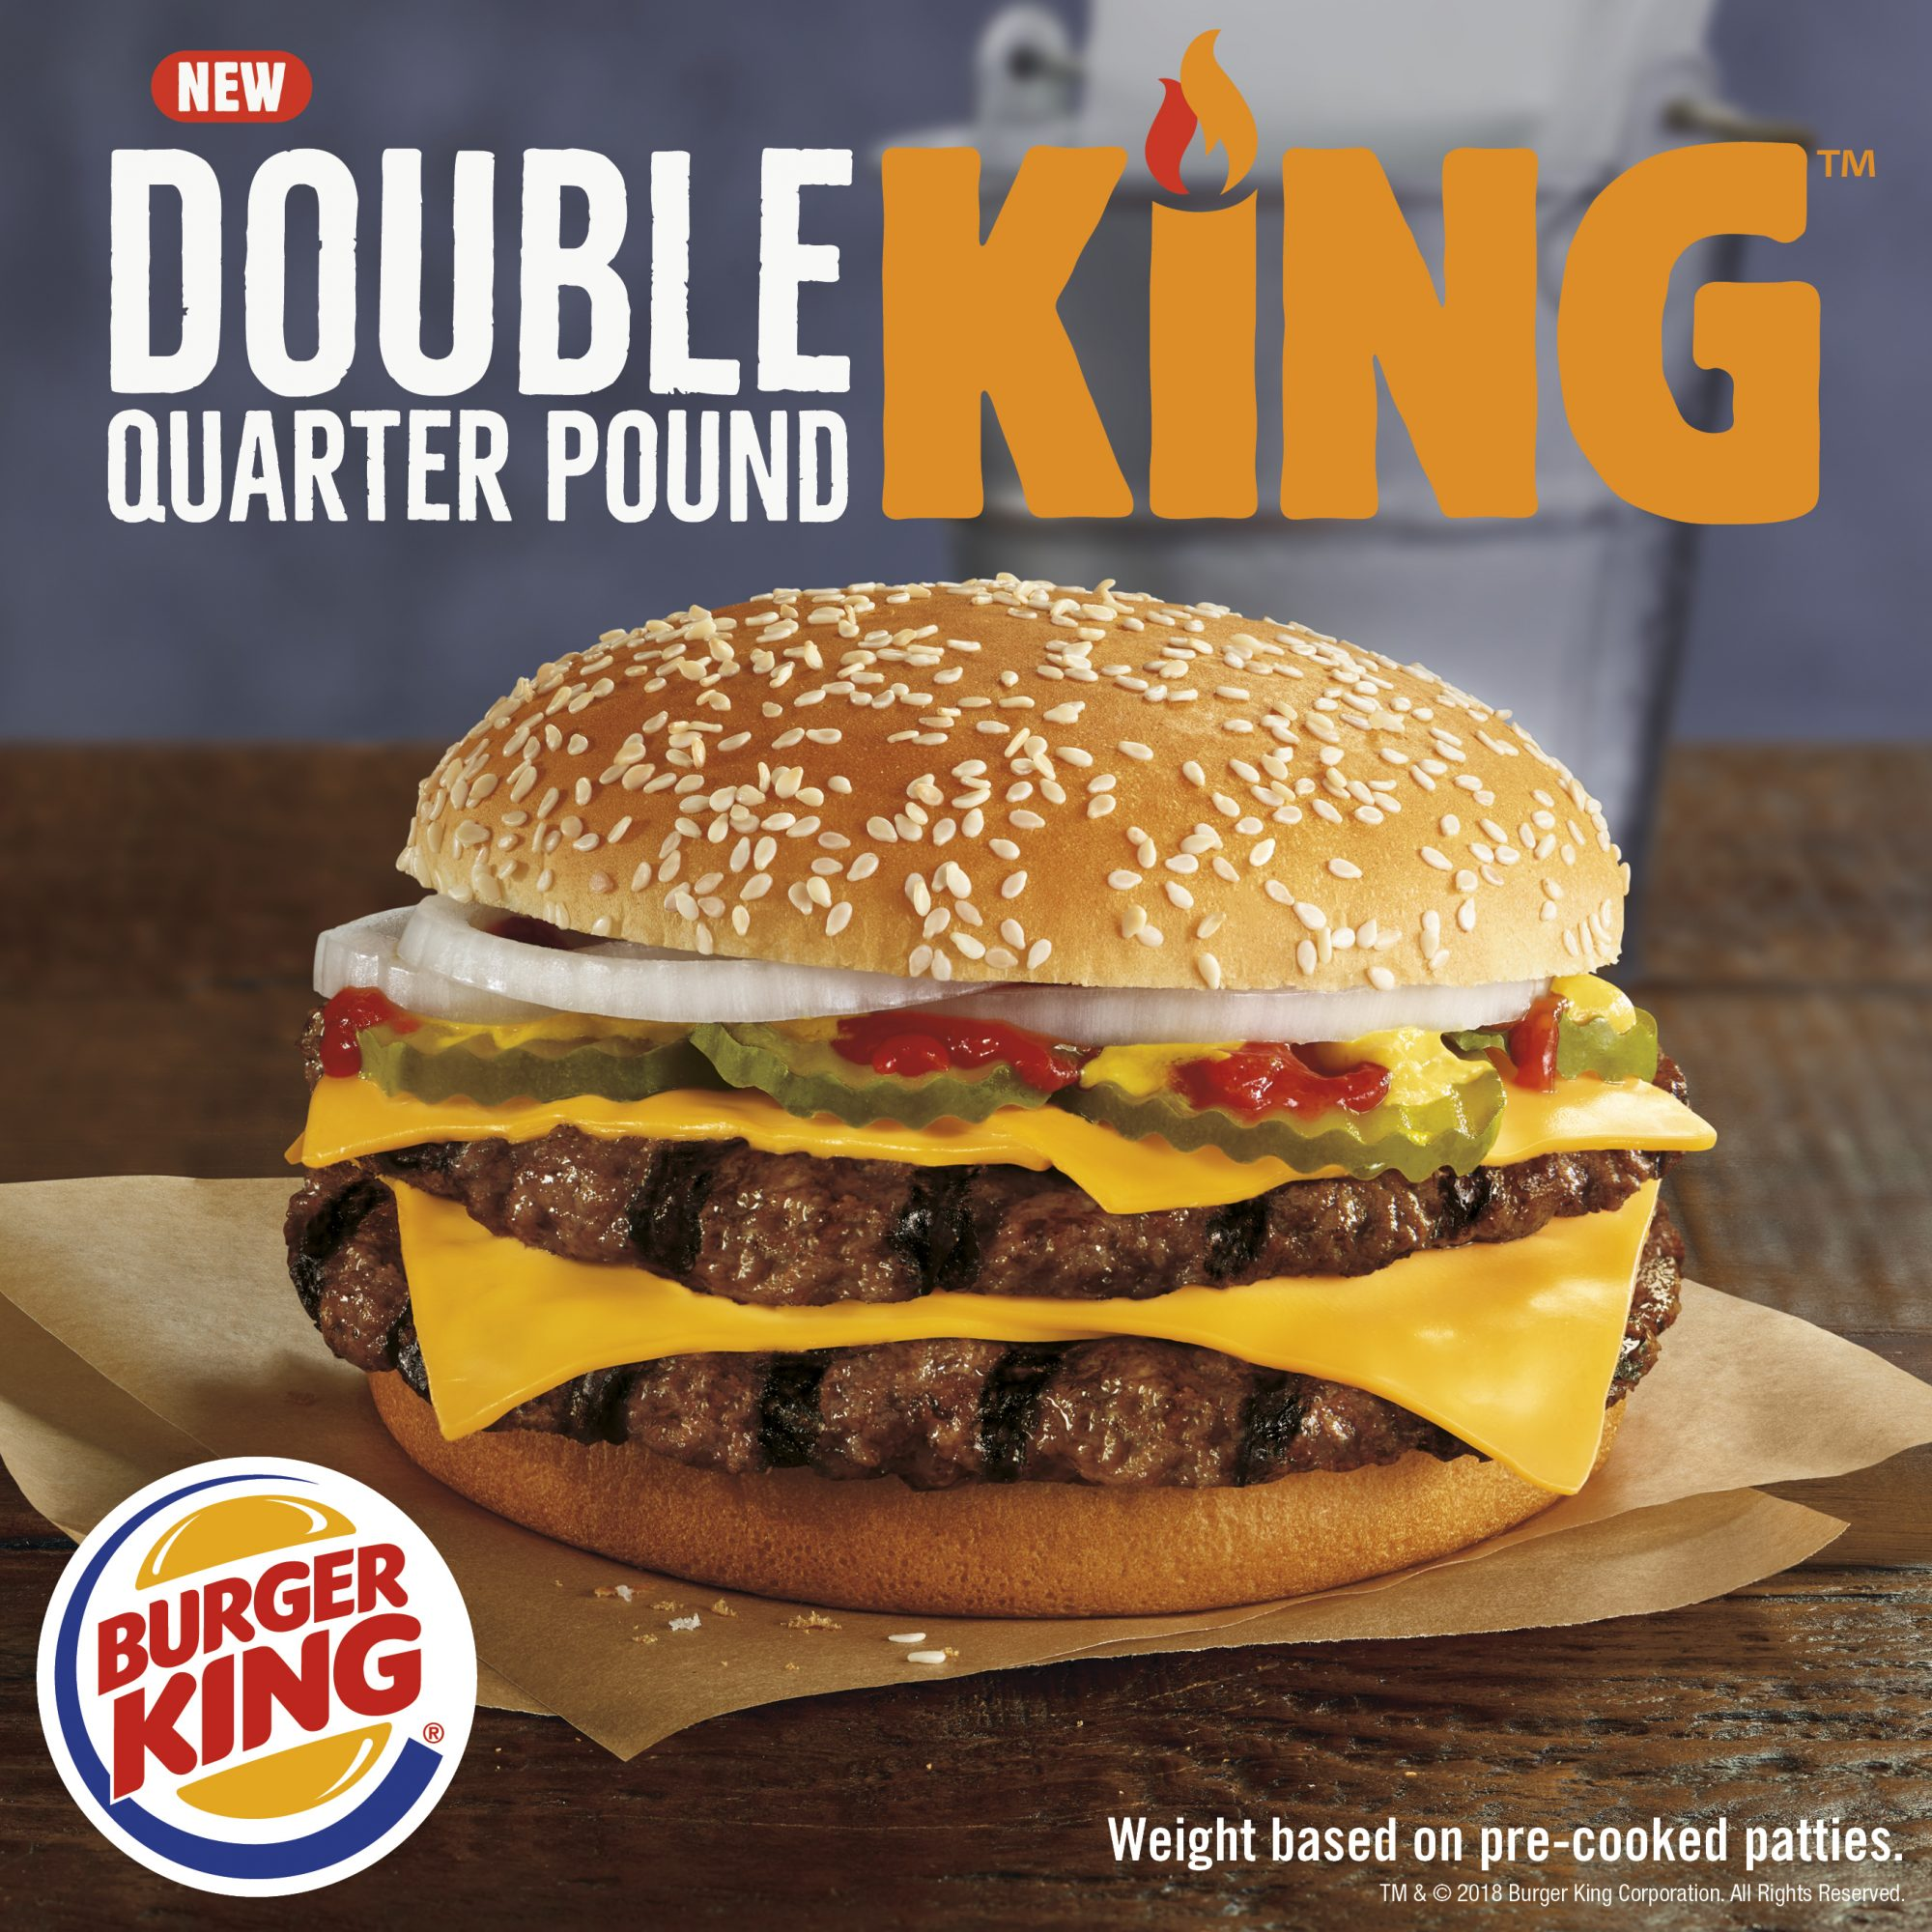 Burger King Double Quarter Pound KING™ Sandwich